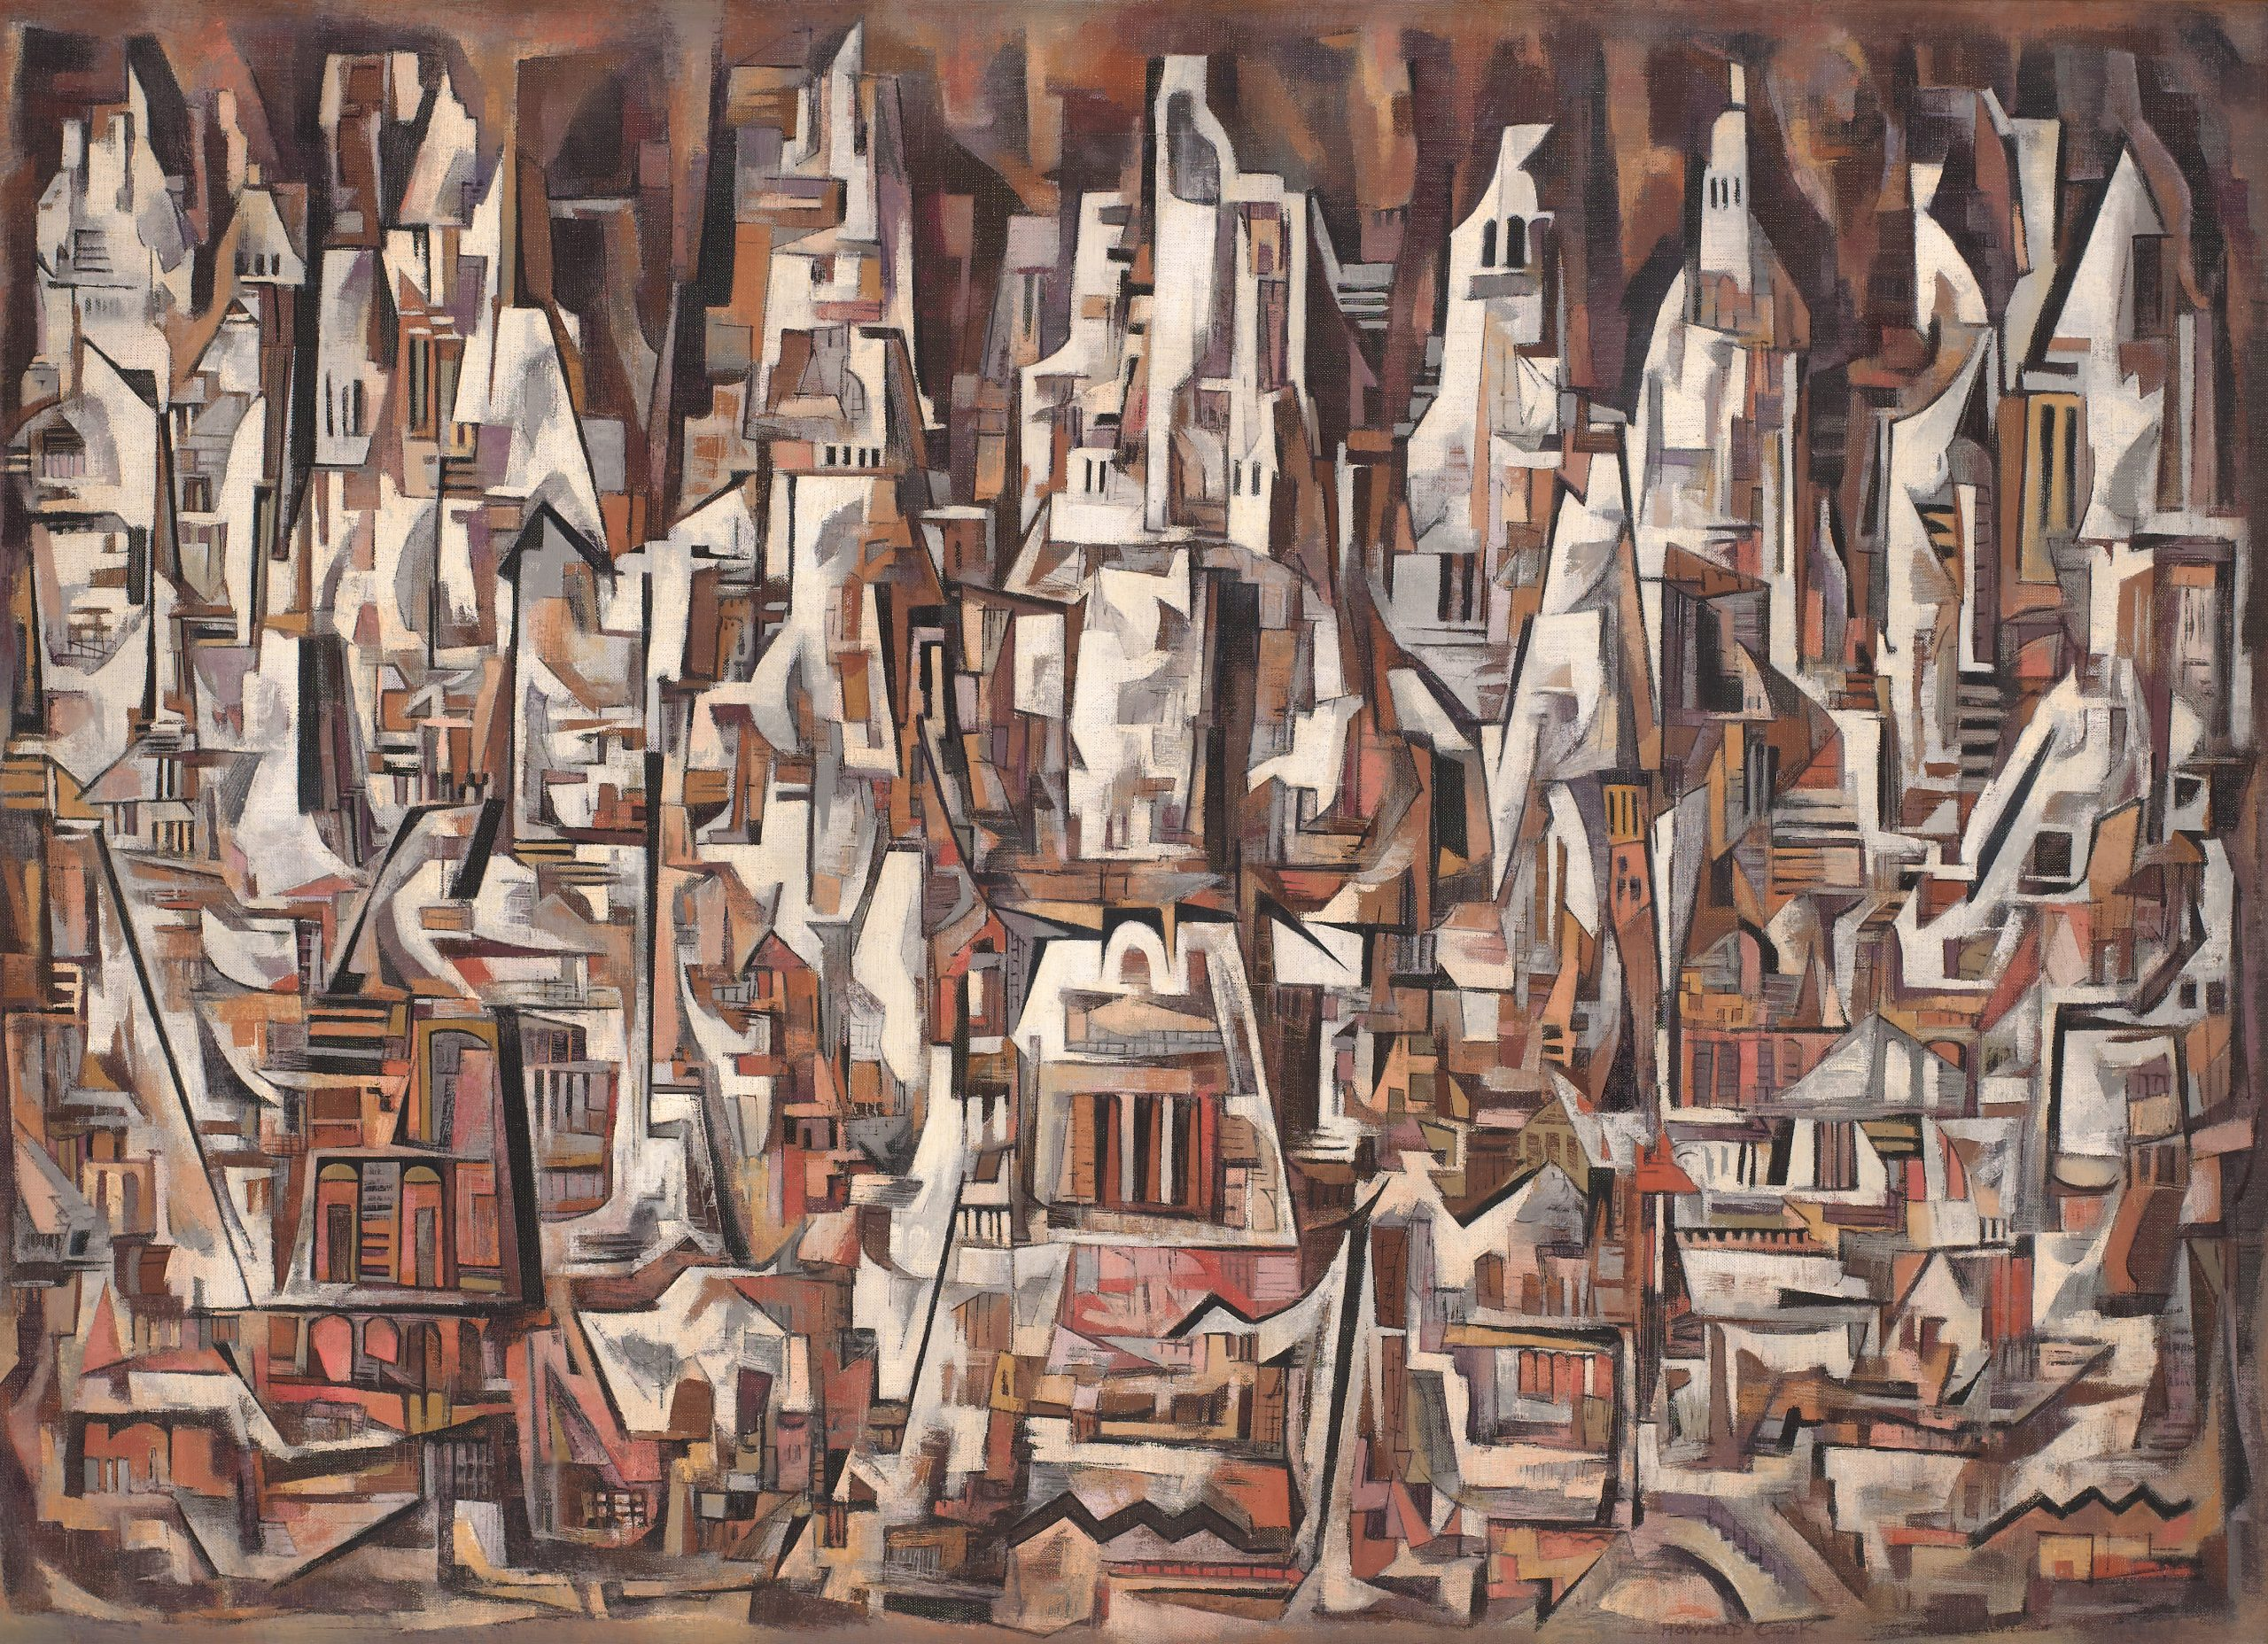 A cubist city with an earthy palette, clustered together like mountains with perpendicular lines resembling doorways and windows.